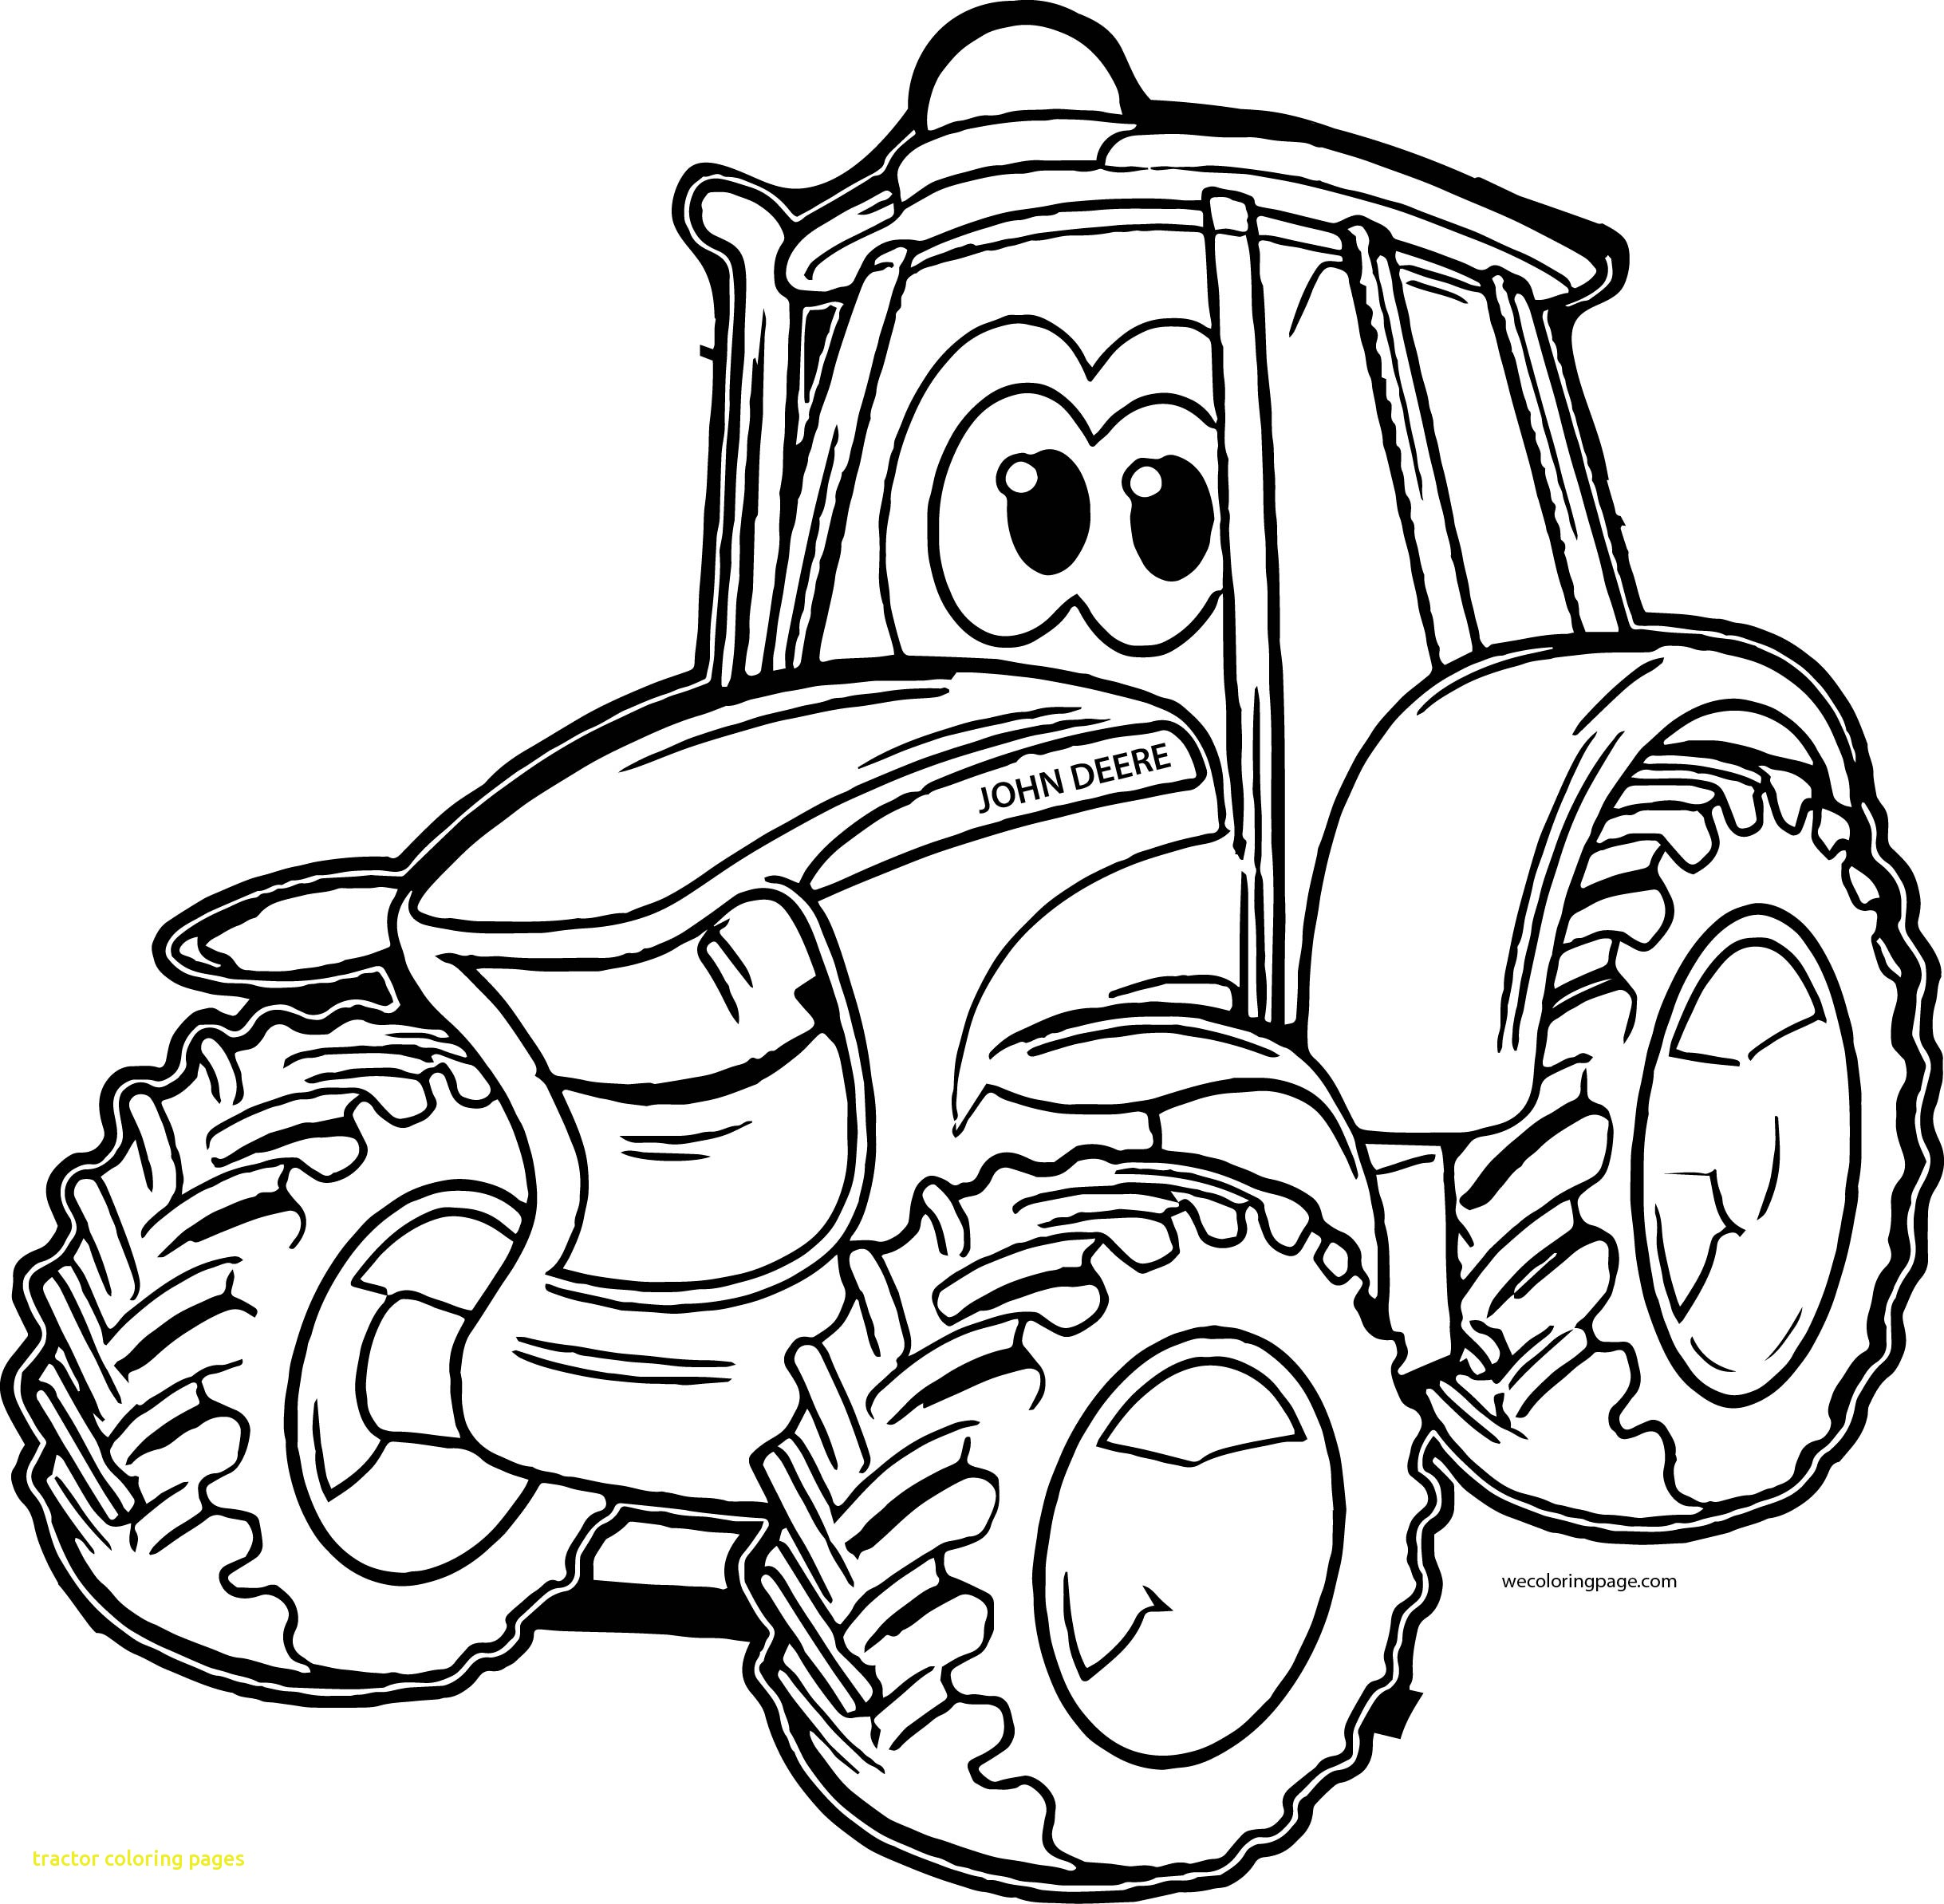 tractor coloring to print tractor drawing for kids at getdrawings free download to print tractor coloring